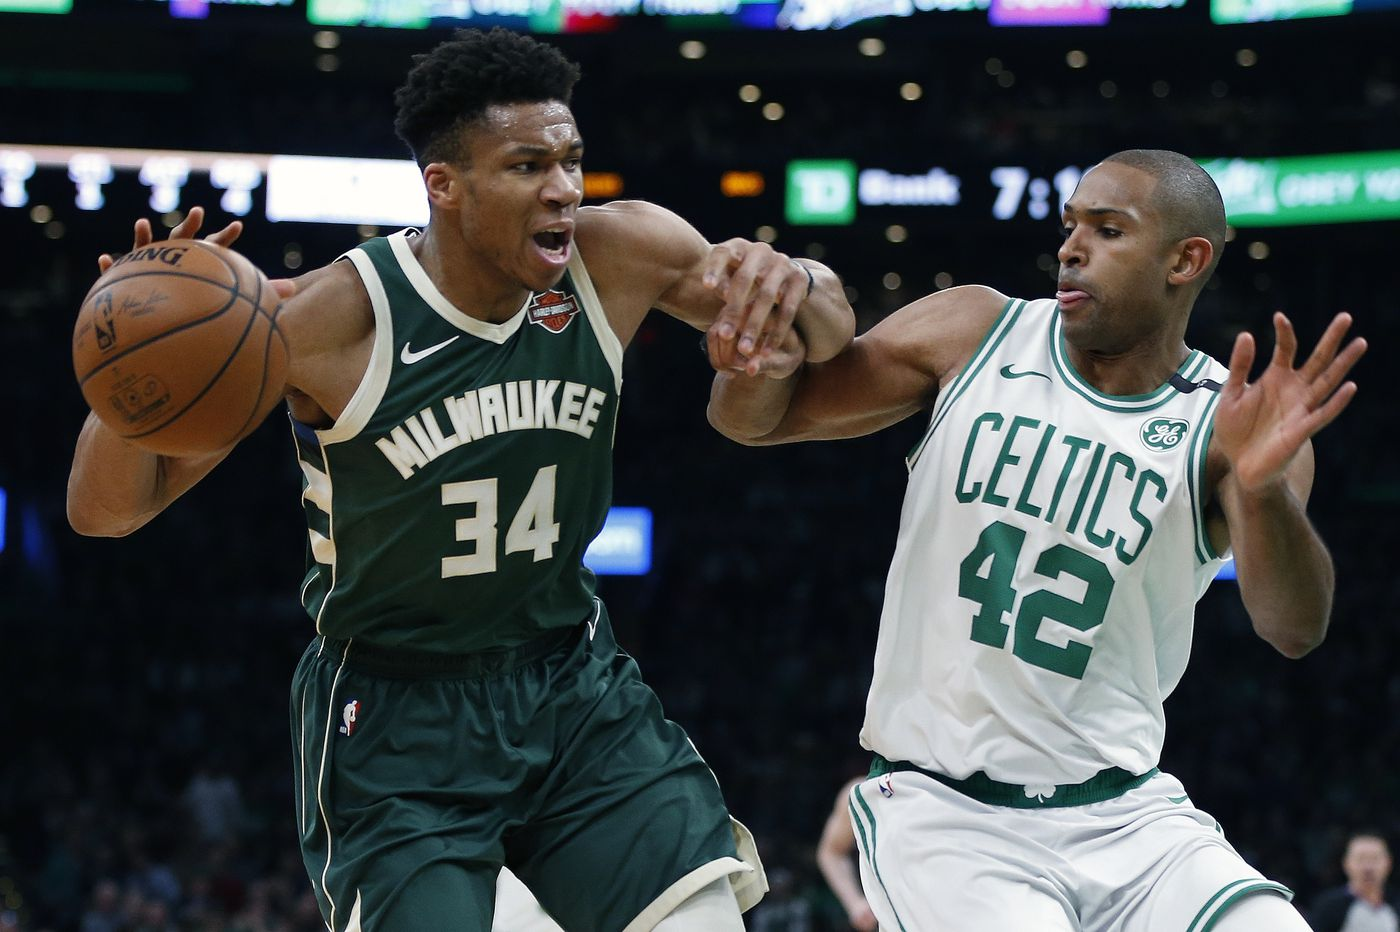 Bucks beat Celtics to advance to East final